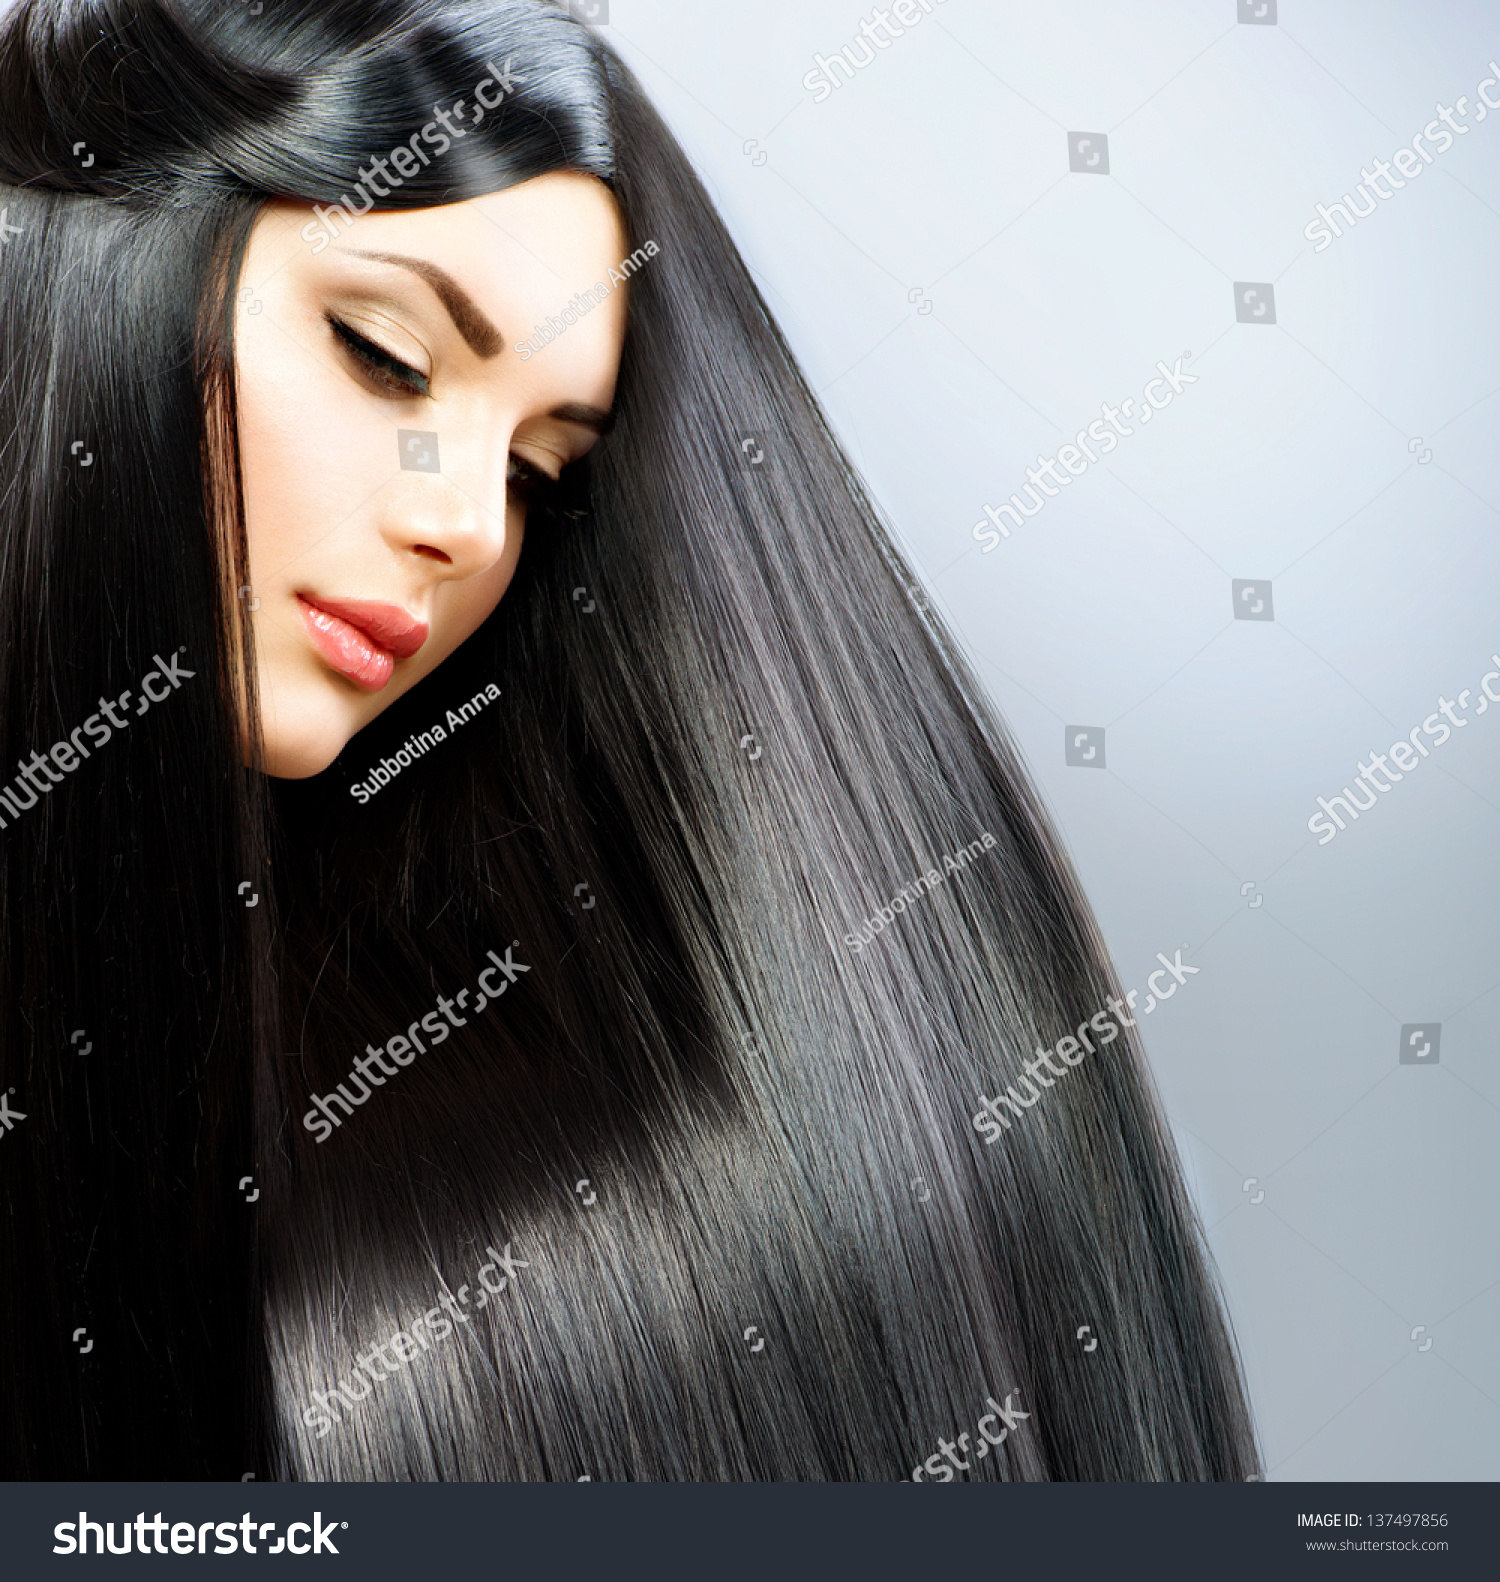 Accept. opinion, Beautiful girl with black hair